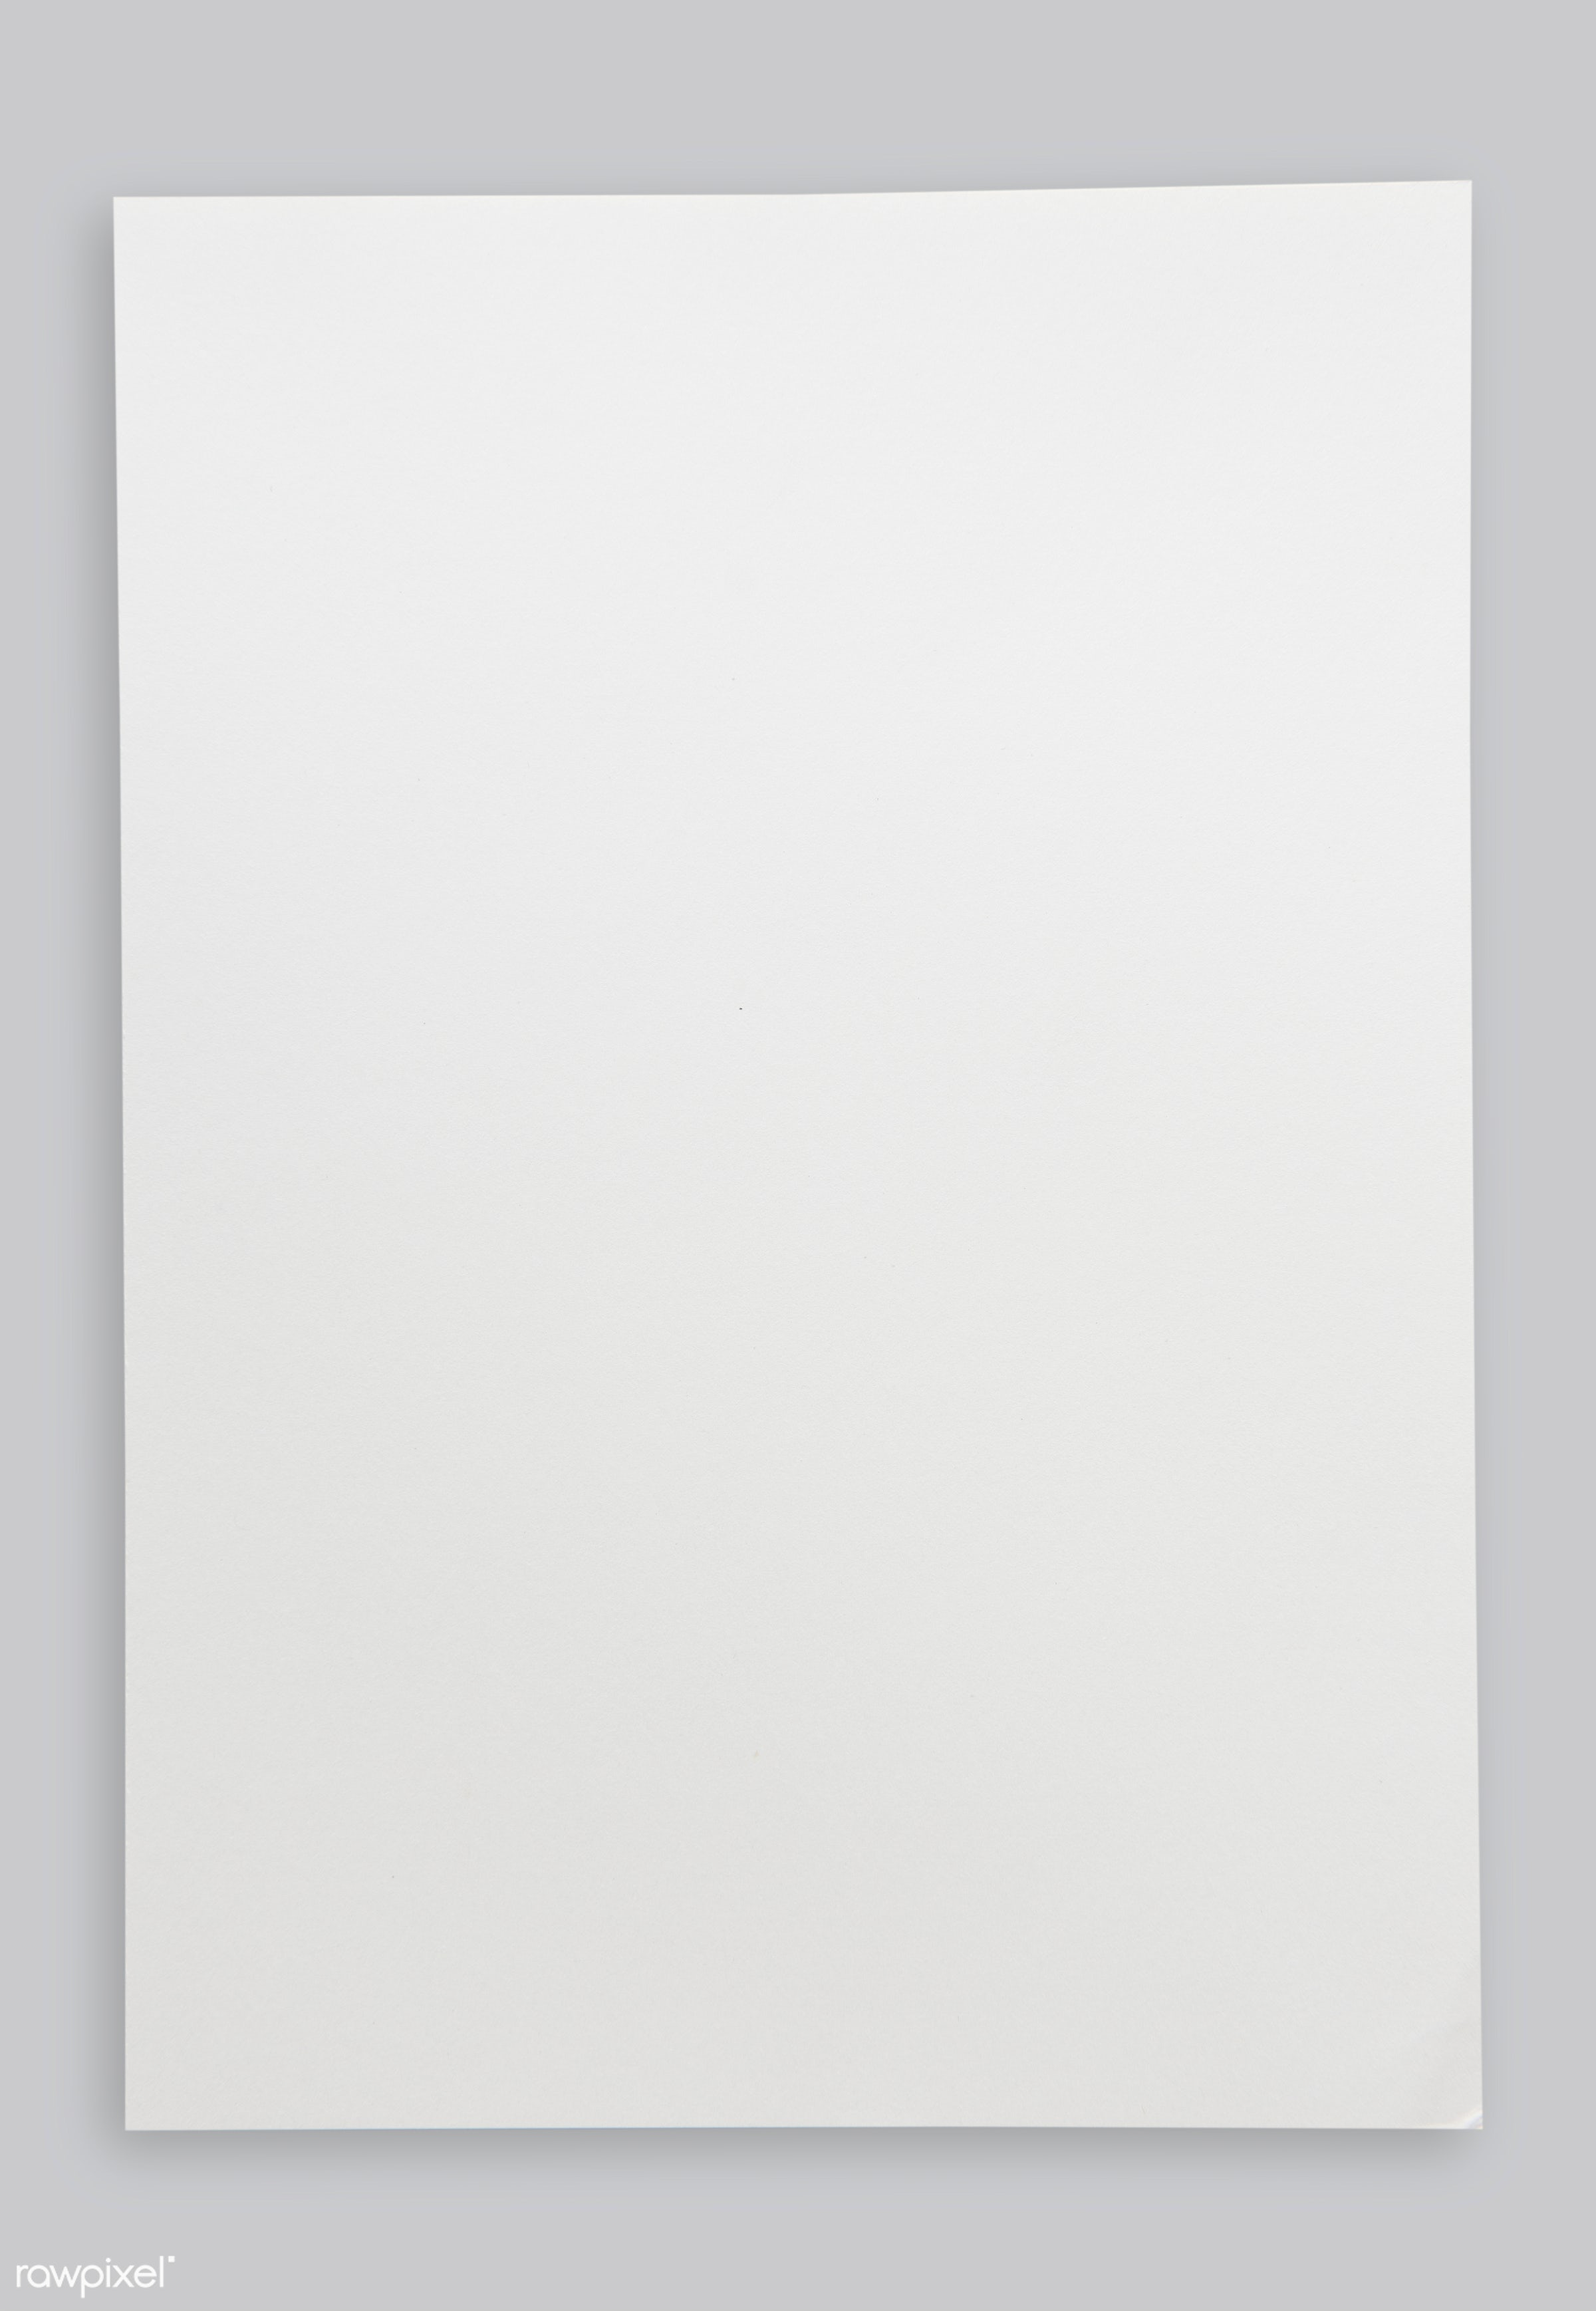 advert, advertisement, background, banner, blank, copy space, empty, hang, hanging, mock up, mockup, texture, wall, white